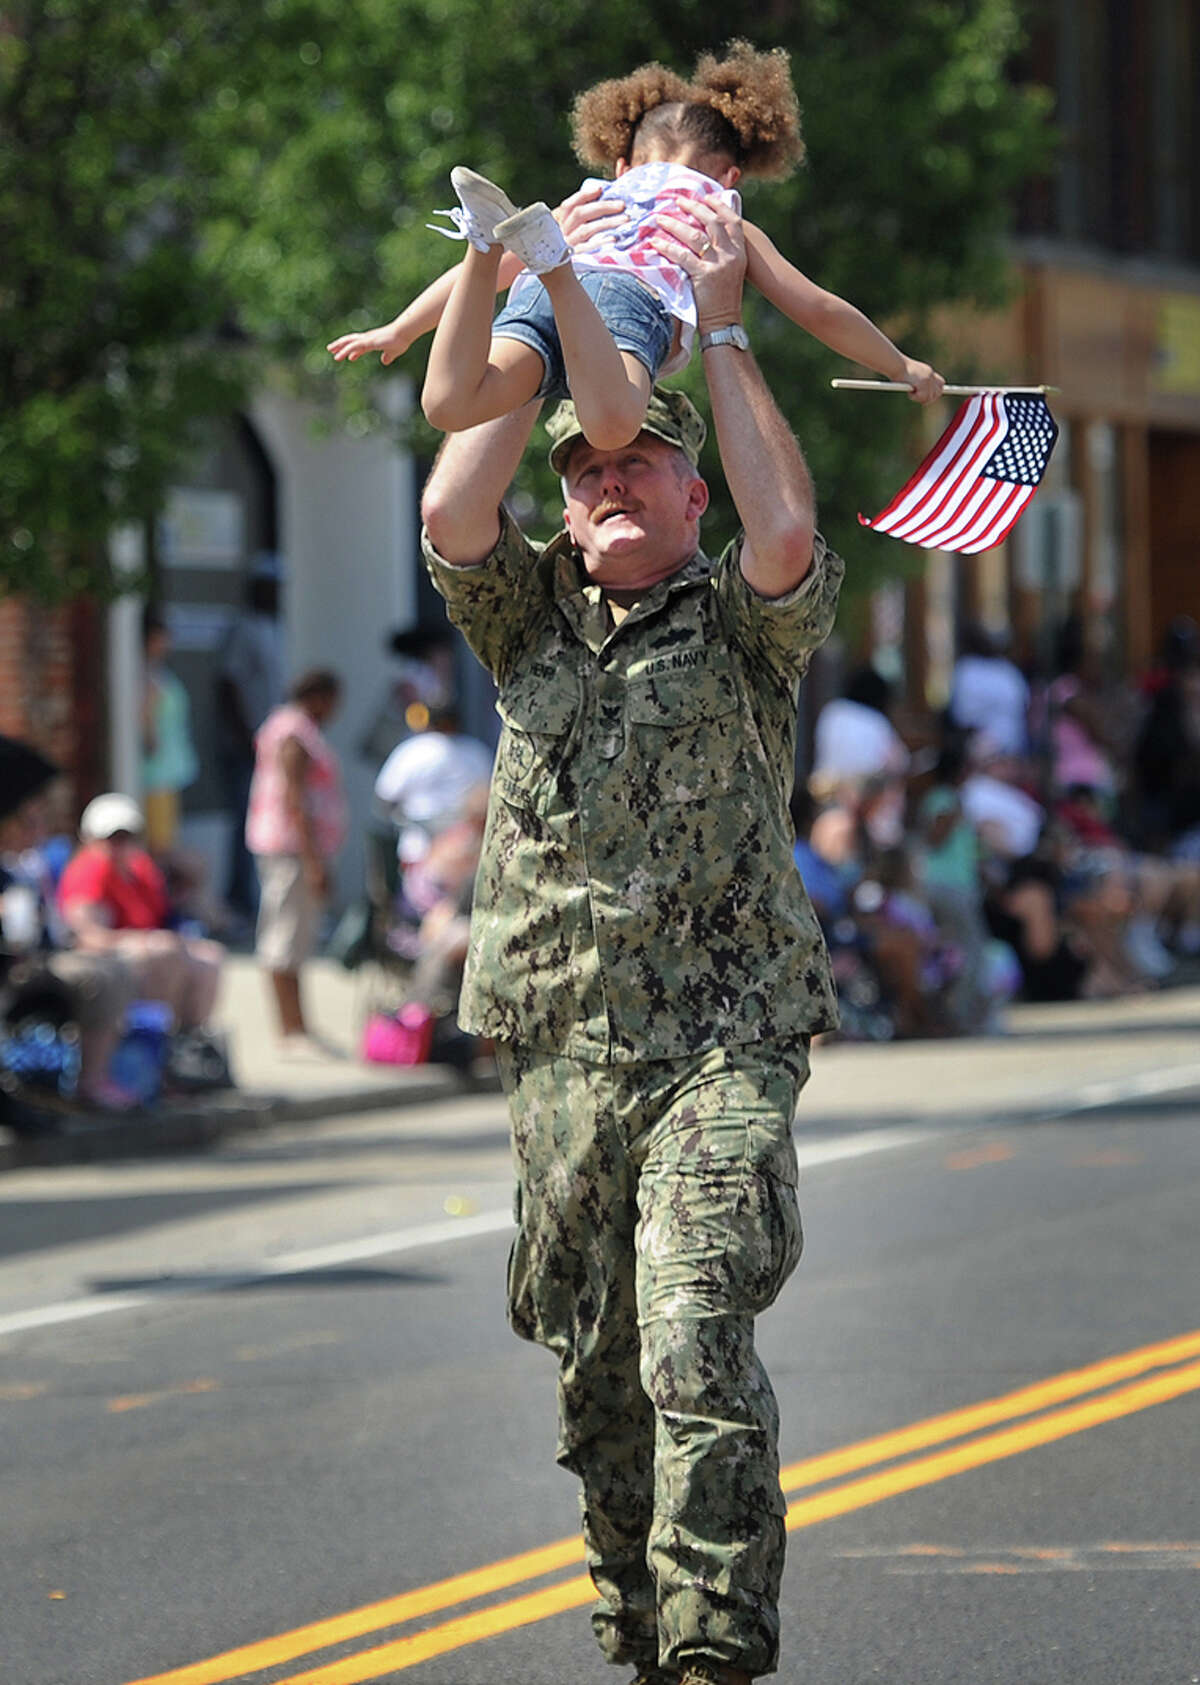 Navy veteran Thomas Henri, of Ansonia, is greeted by his granddaughter Justice Dukes, 3, as he marches in the Memorial Day parade on Main Street in Ansonia, Conn. on Sunday, May 29, 2016.